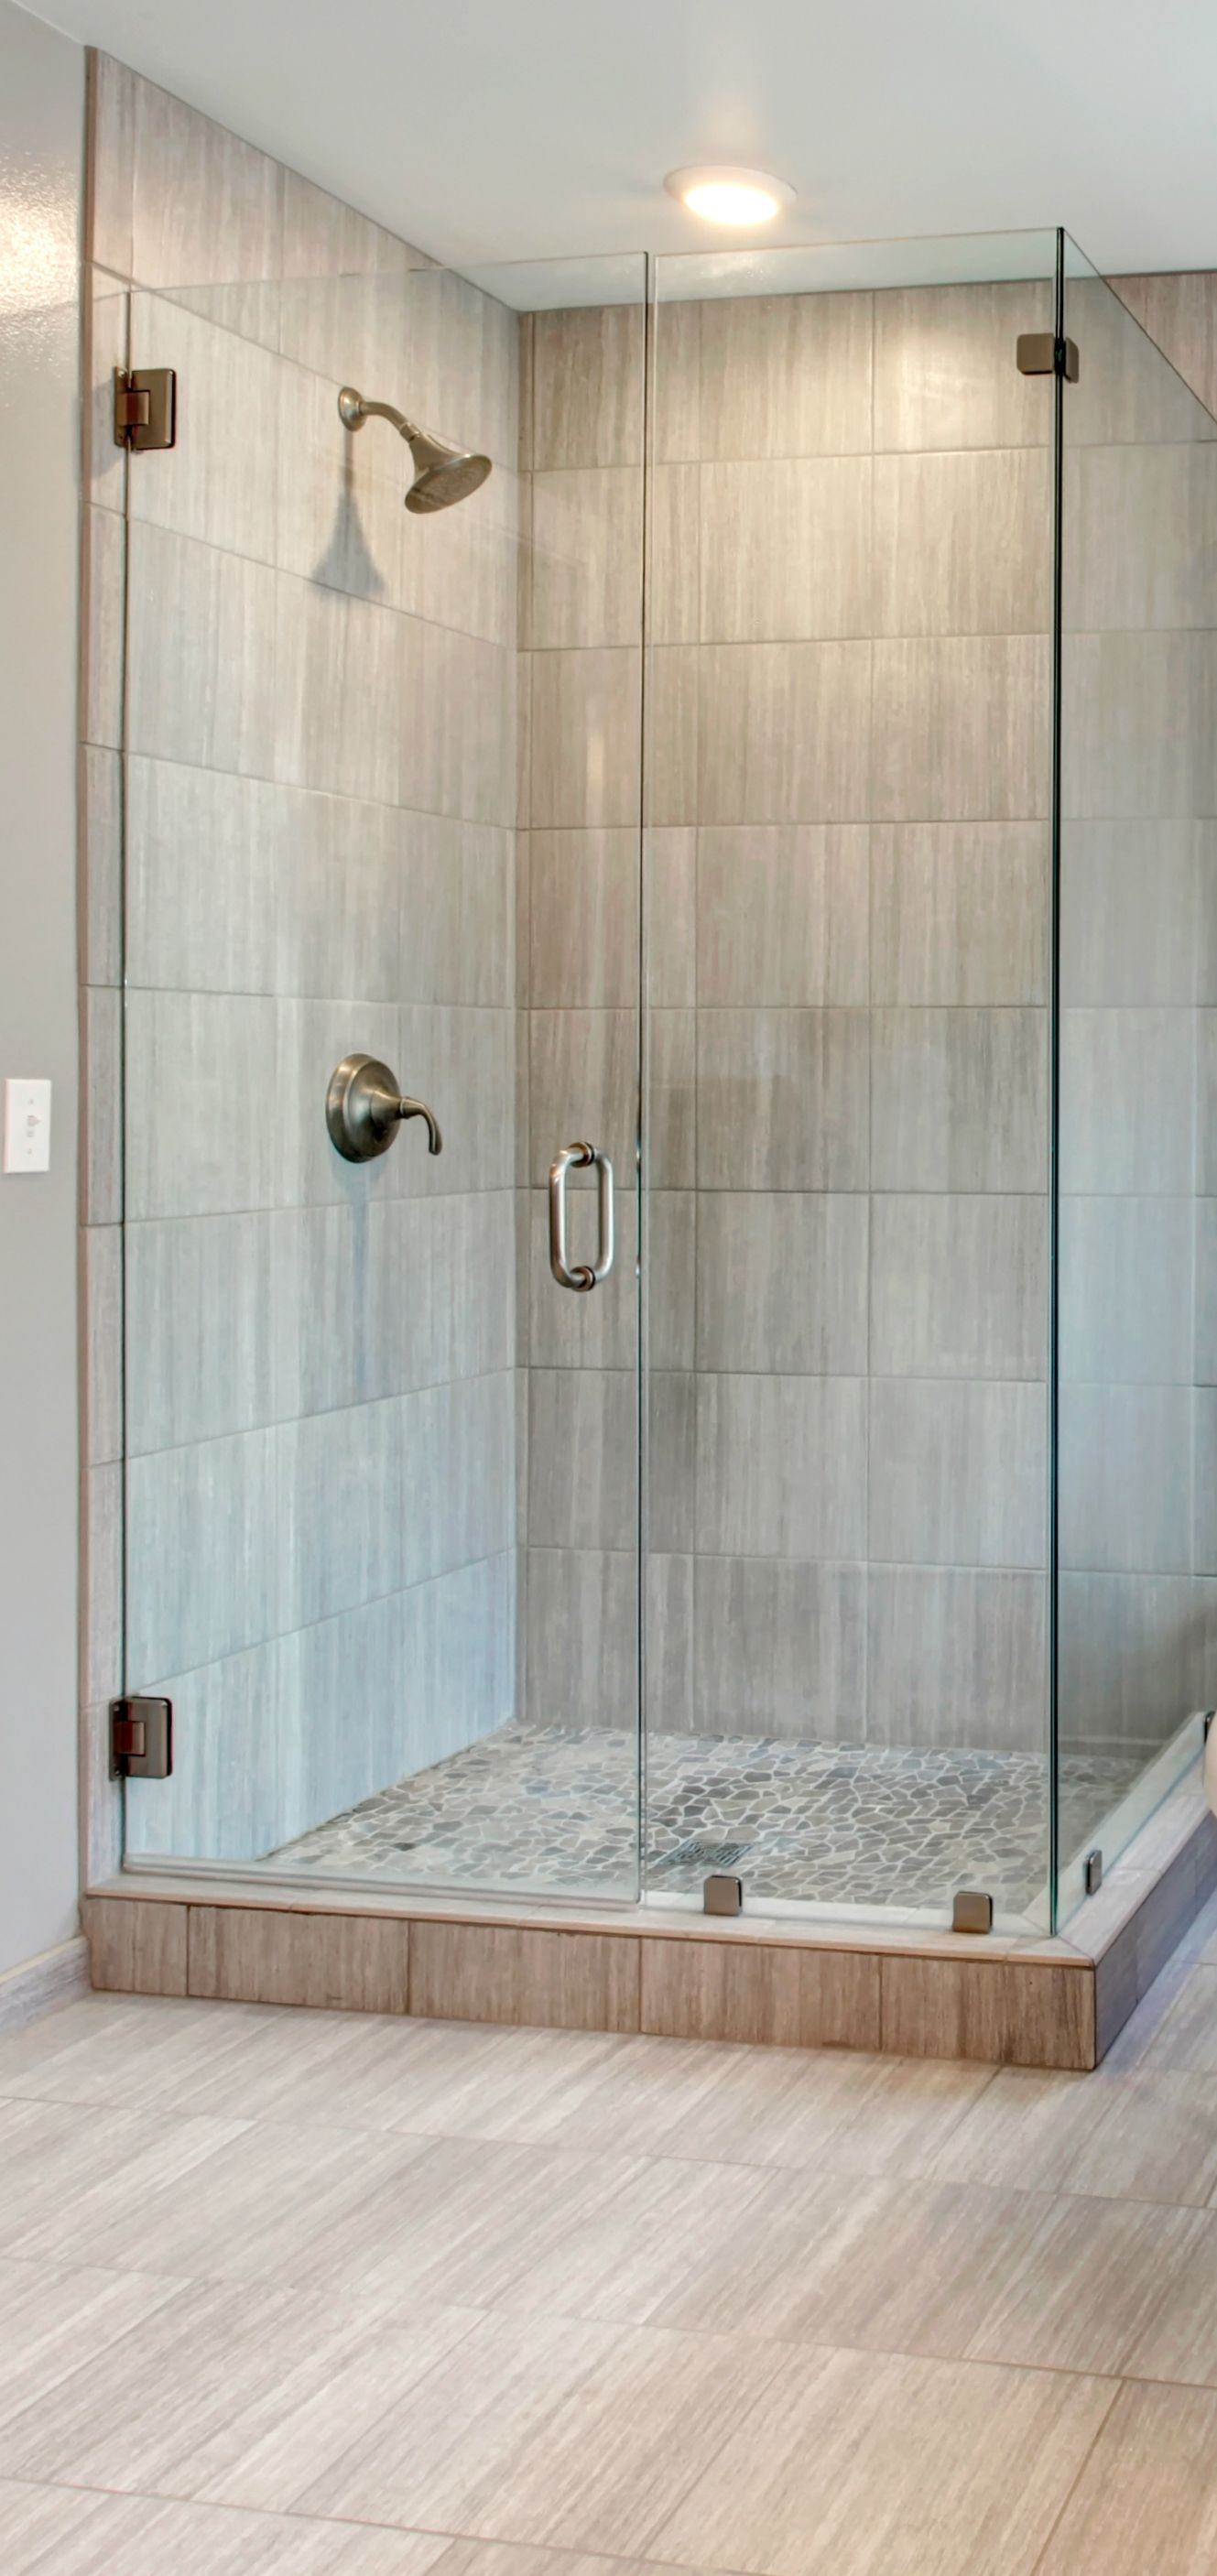 Small Shower Design Ideas small shower room ideas withal 04a94b236d420e601701bbde373f6b67 Showers Corner Walk In Shower Ideas For Simple Small Bathroom With Natural Stone Shower Pans Decor